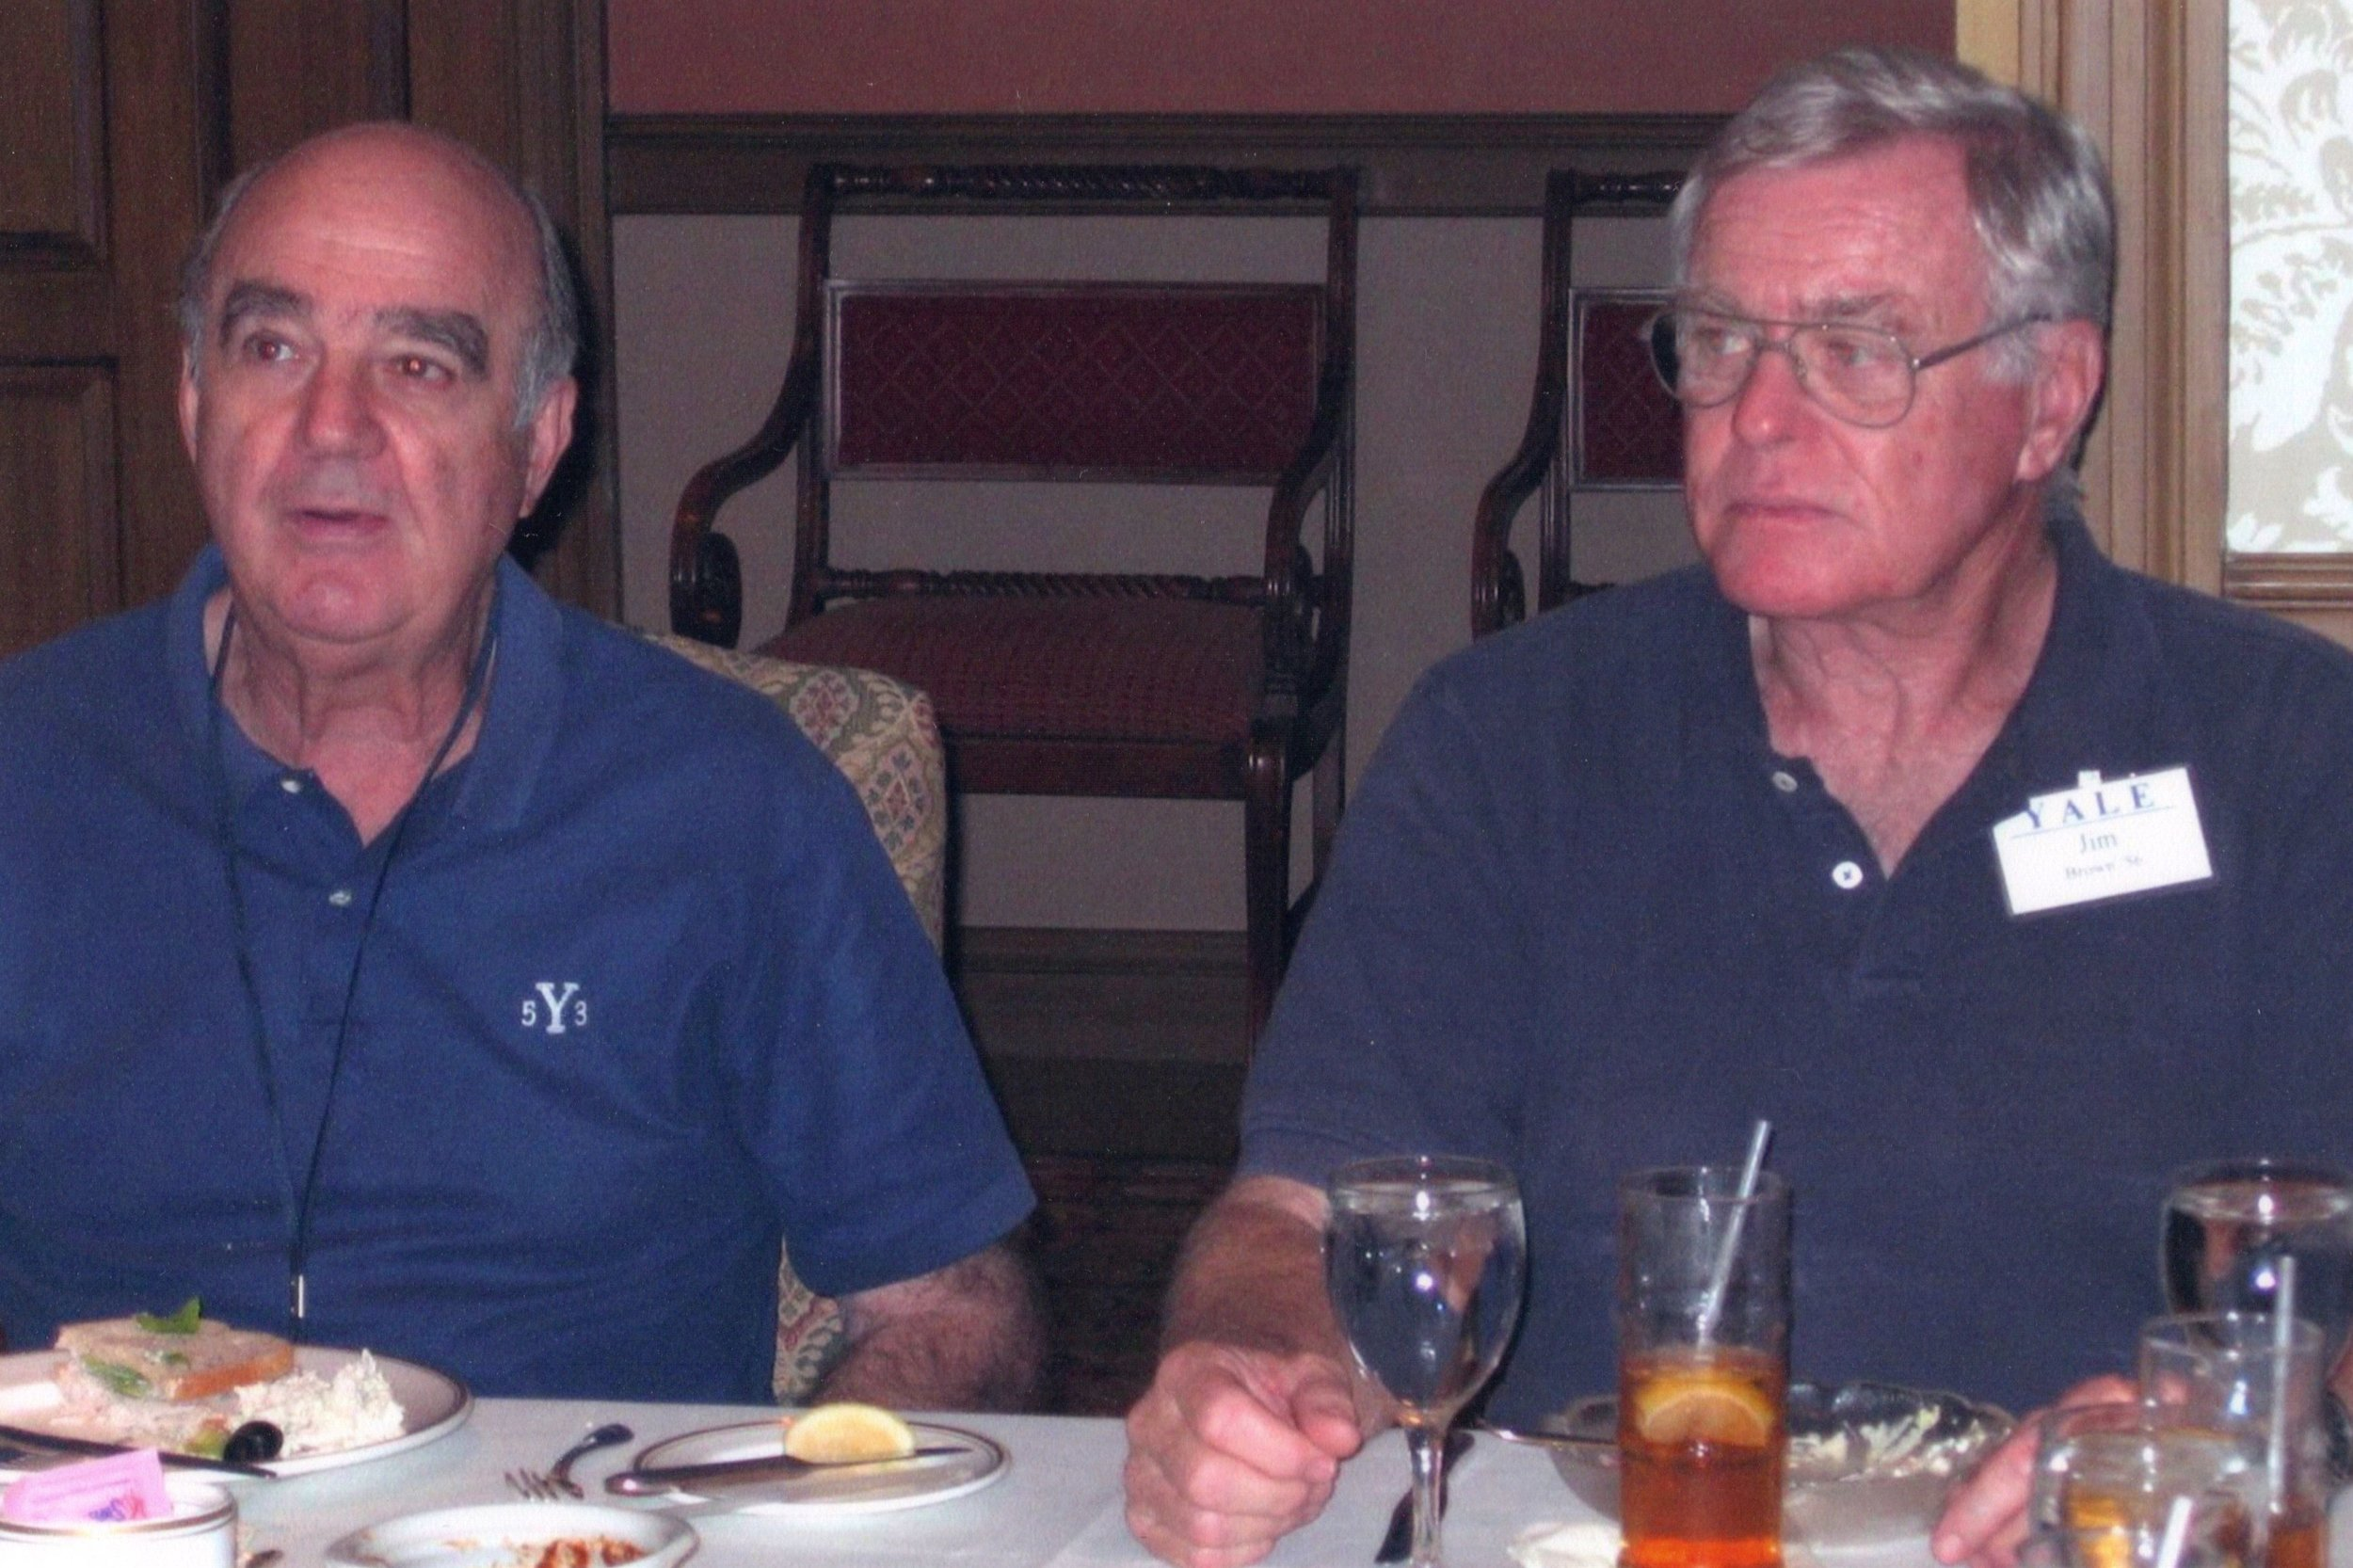 12_9_2004 - MONTHLY LUNCHEON - THE CLUB AT PELICAN BAY 5.jpg